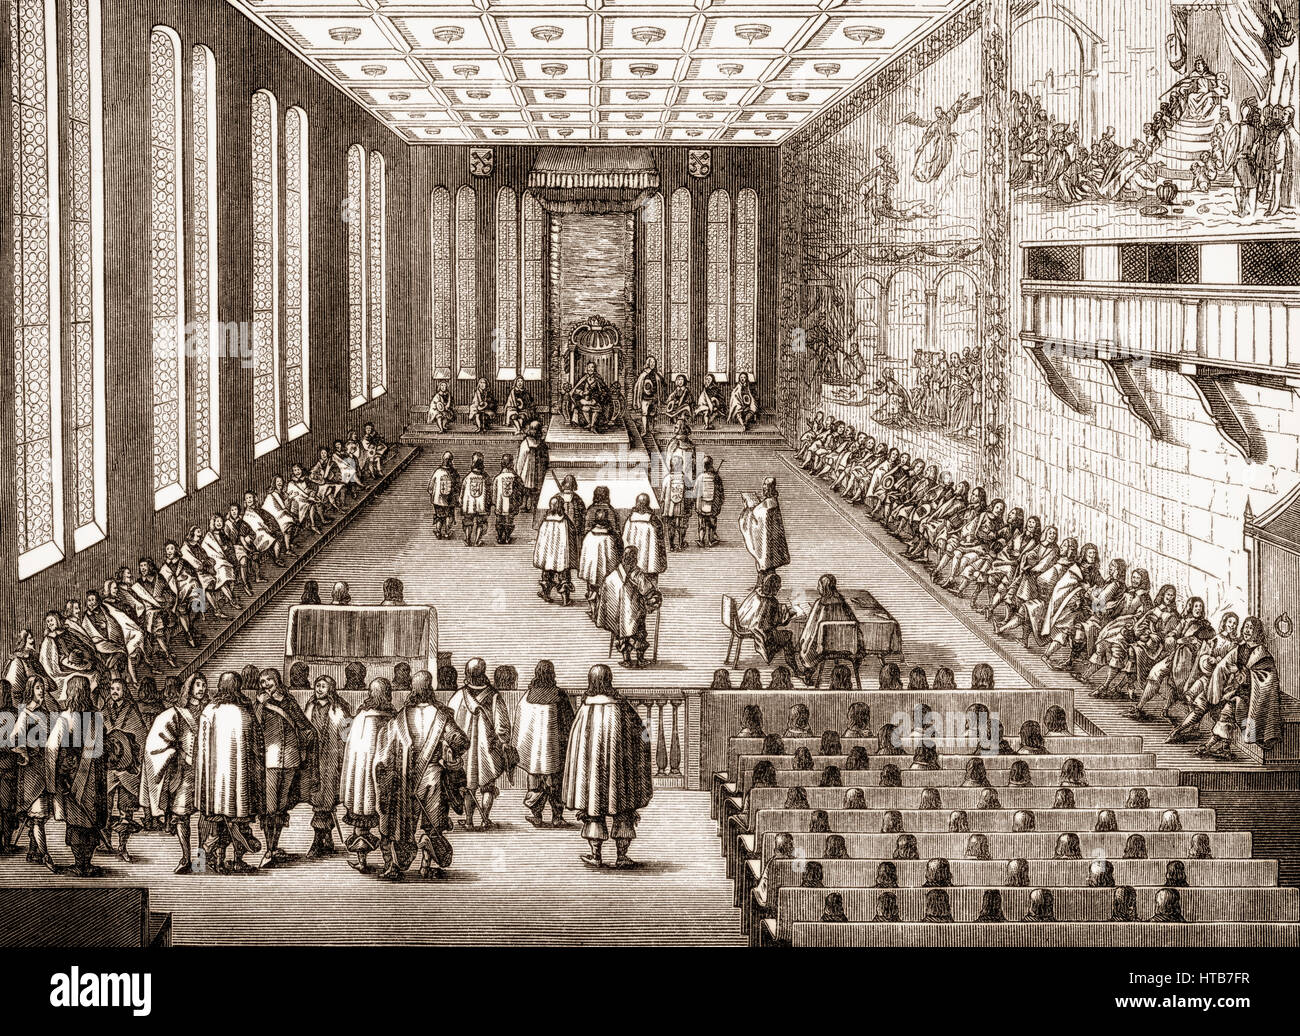 Seating plan for an inauguration of the Imperial Diet in the Regensburg Town Hall, Germany, 1640 - Stock Image